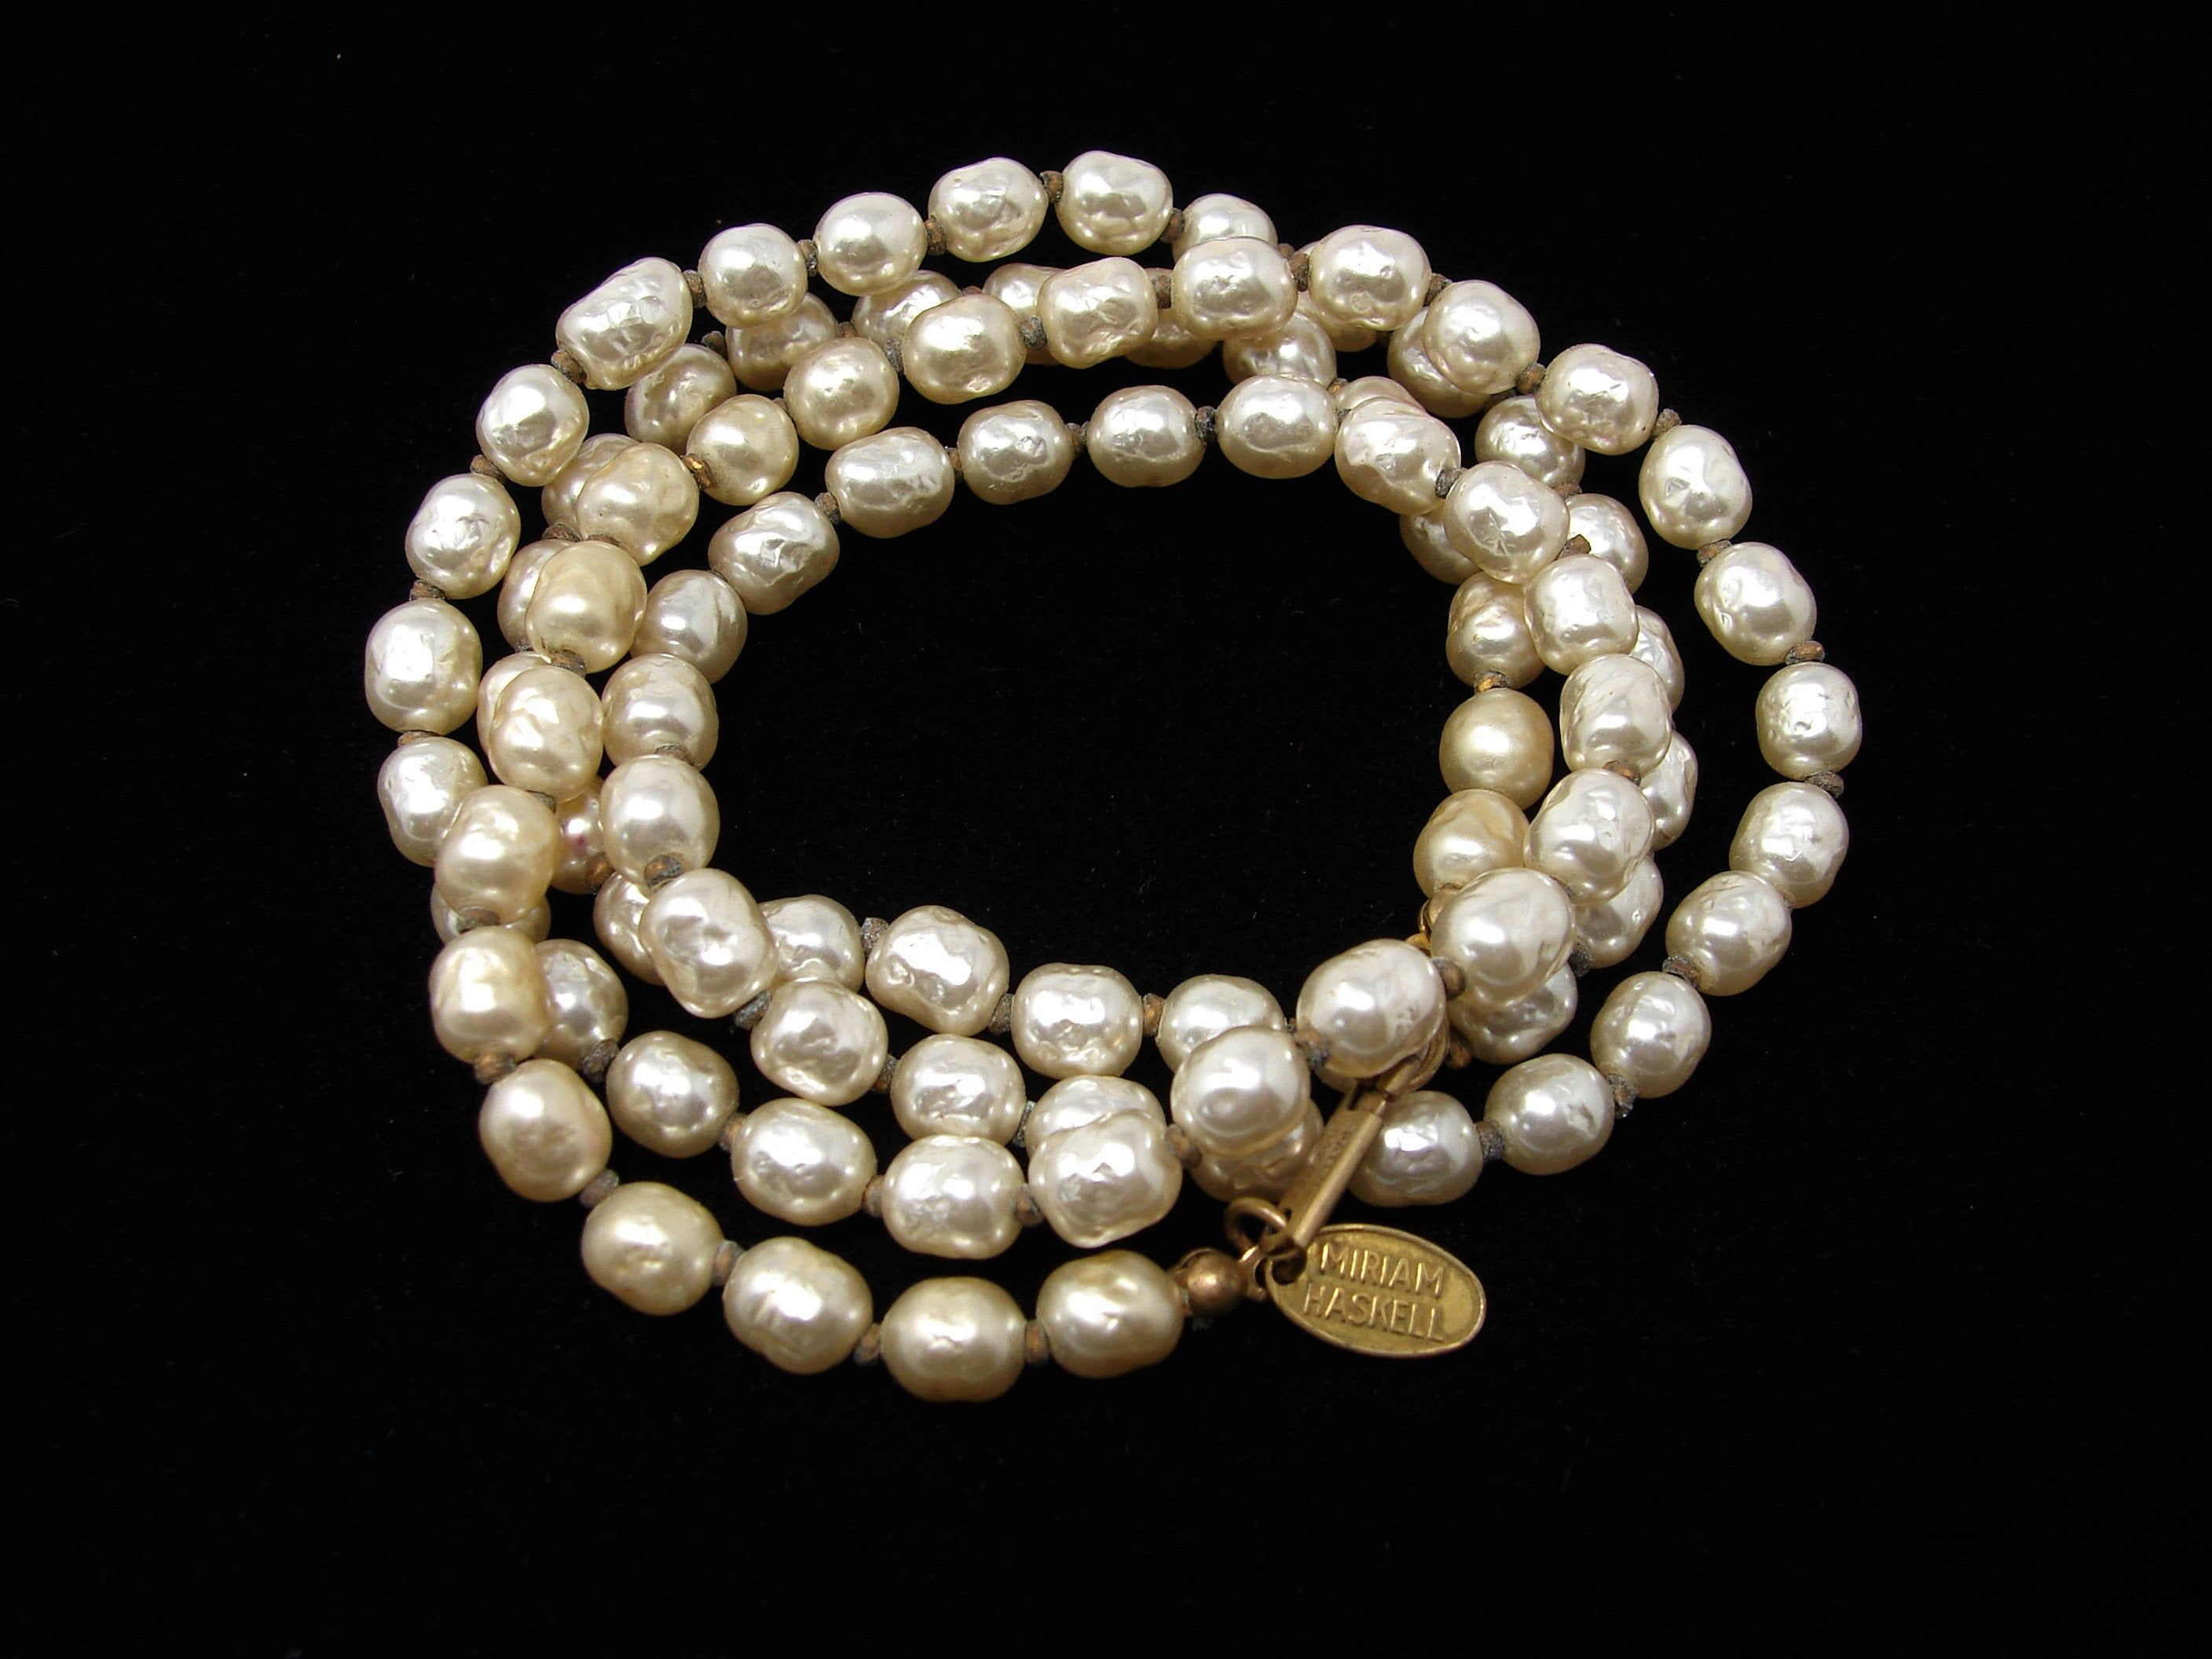 Vintage 40s Timeless Elegant Triple Strand Faux Pearl Signed Miriam Haskell  Ladies Necklace Bridal Gift for Her